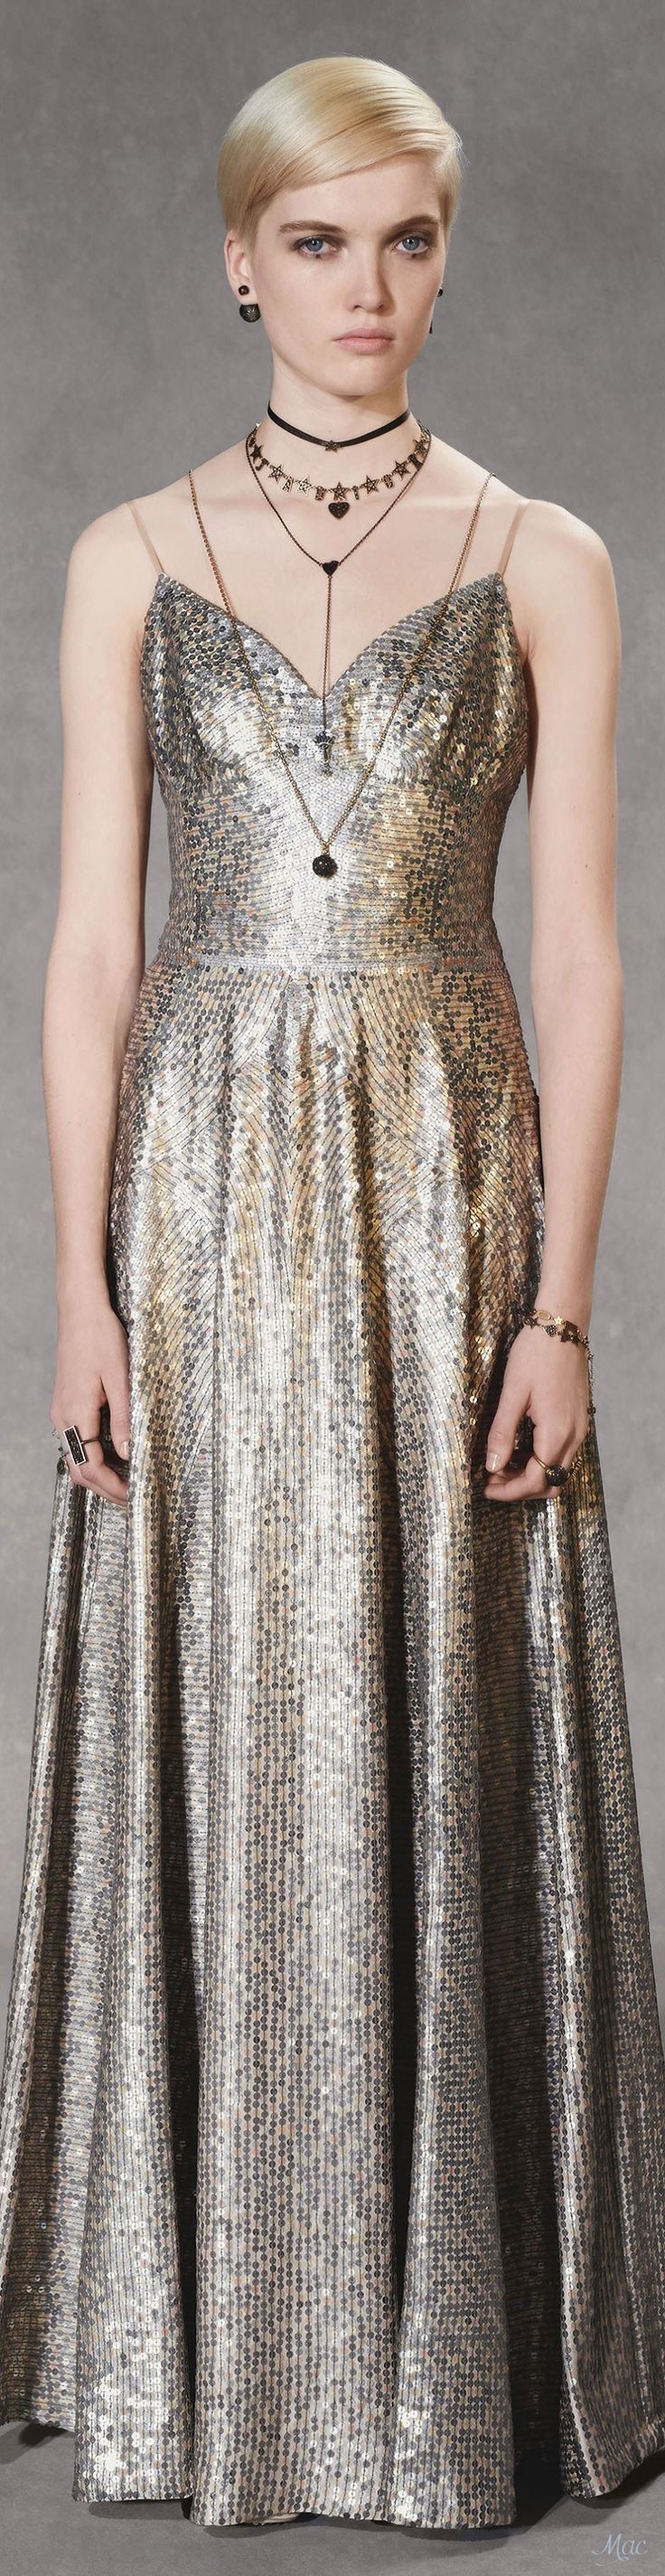 Yule style!! TREND 2018-2019 METALLIACS! Noel Christmas! New Years Eve 2019!!! Looks like metallics will be going strong for fashion! Pre-Fall 2018 Christian Dior